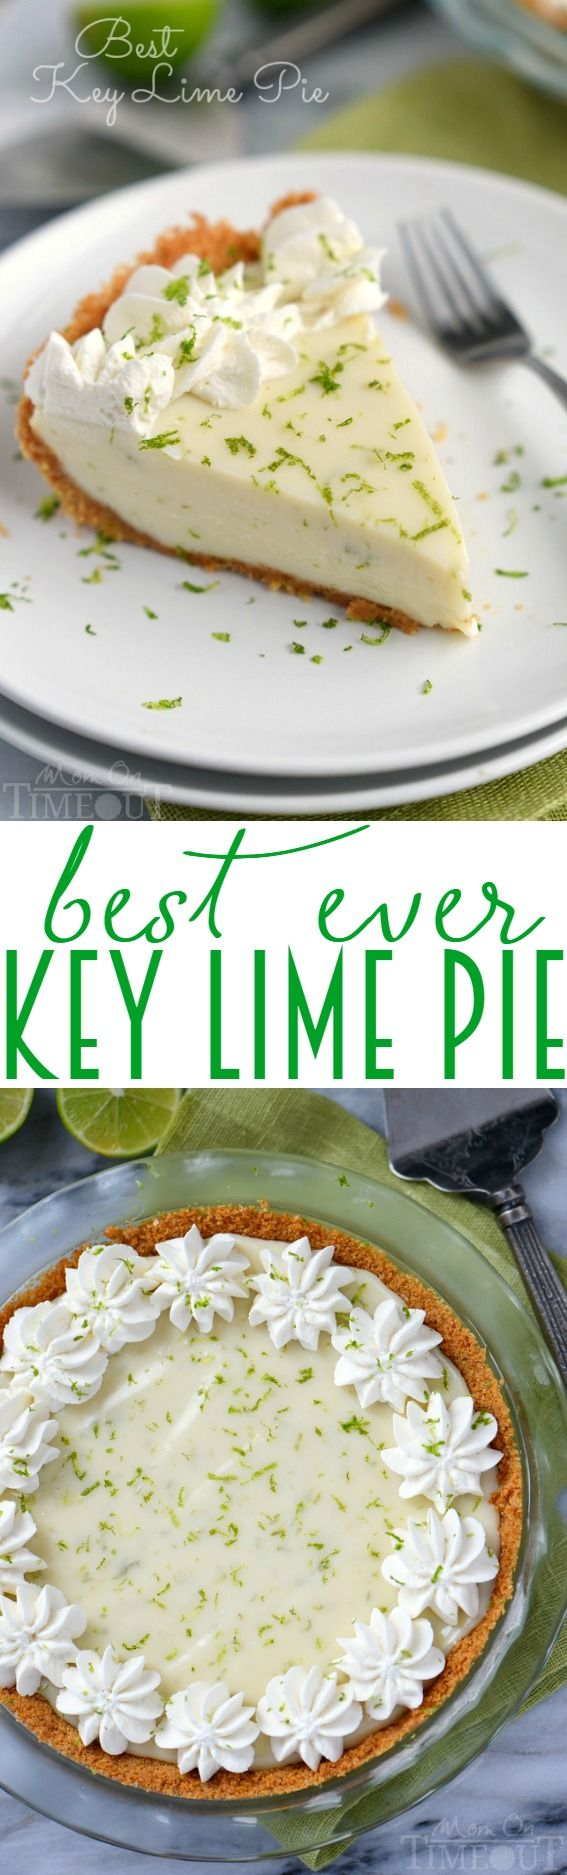 The Best Key Lime Pie recipe EVER! And so darn easy too! You won't be able to stop at just one slice! | MomOnTimeout.com More